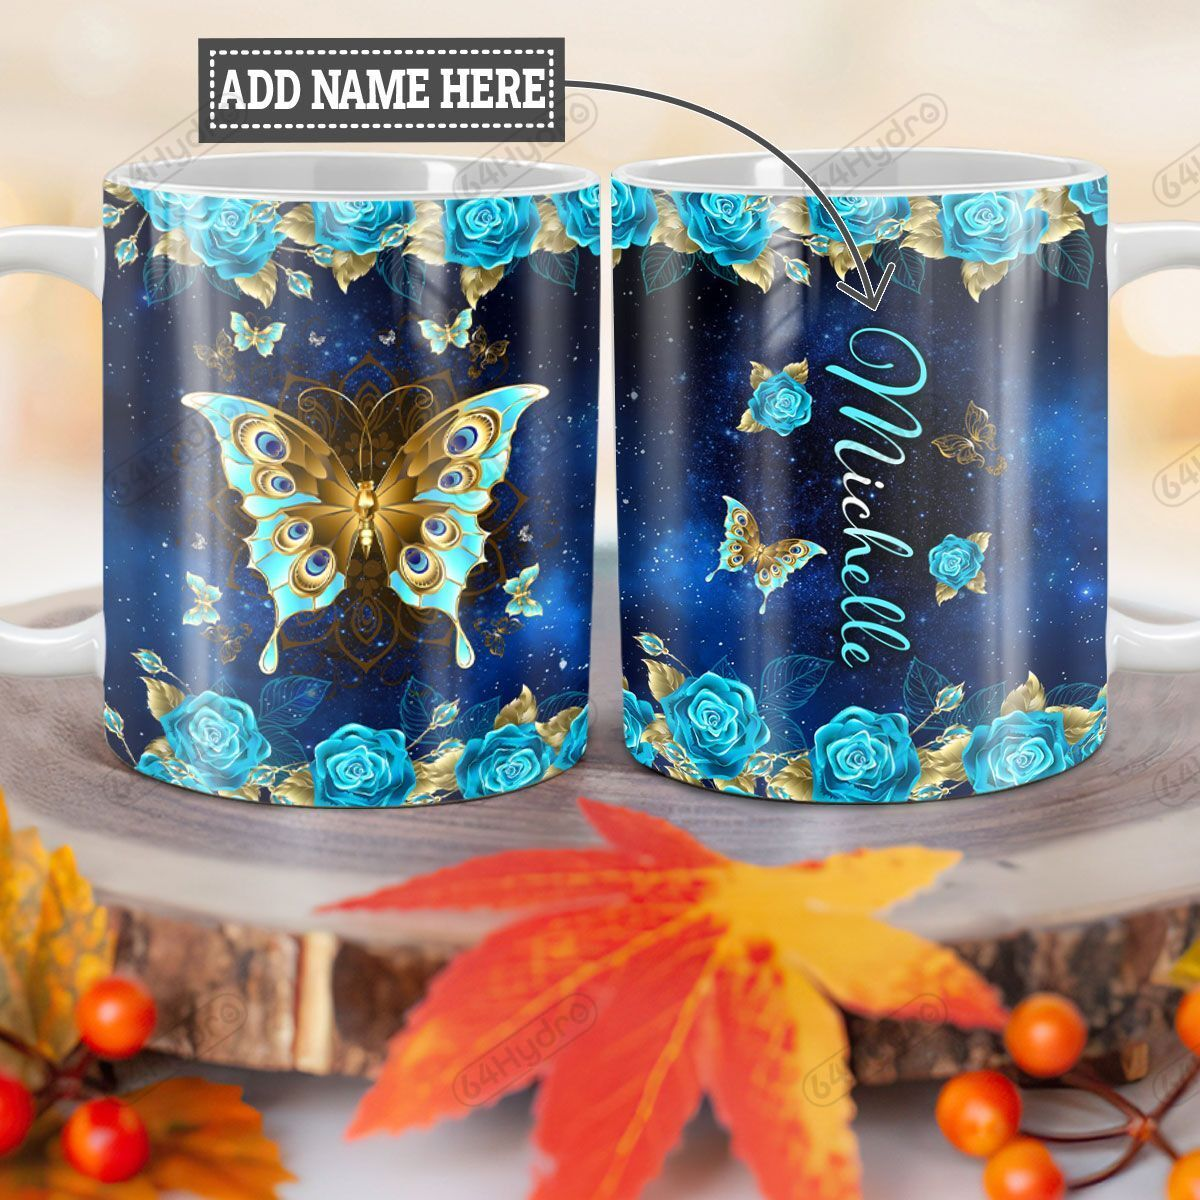 Personalized Blue Rose Butterfly TTZ1201005Z Full Color Ceramic Mug